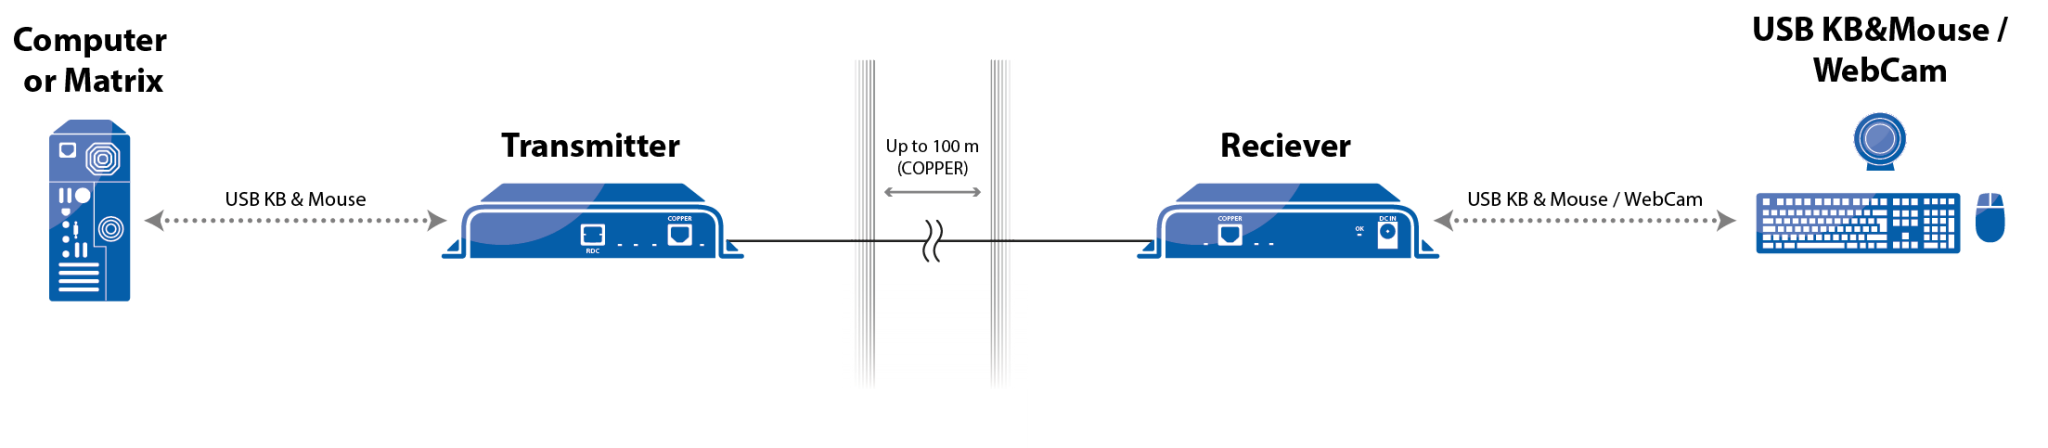 ILL_USB_extender_non_secure_System-Diagram_d